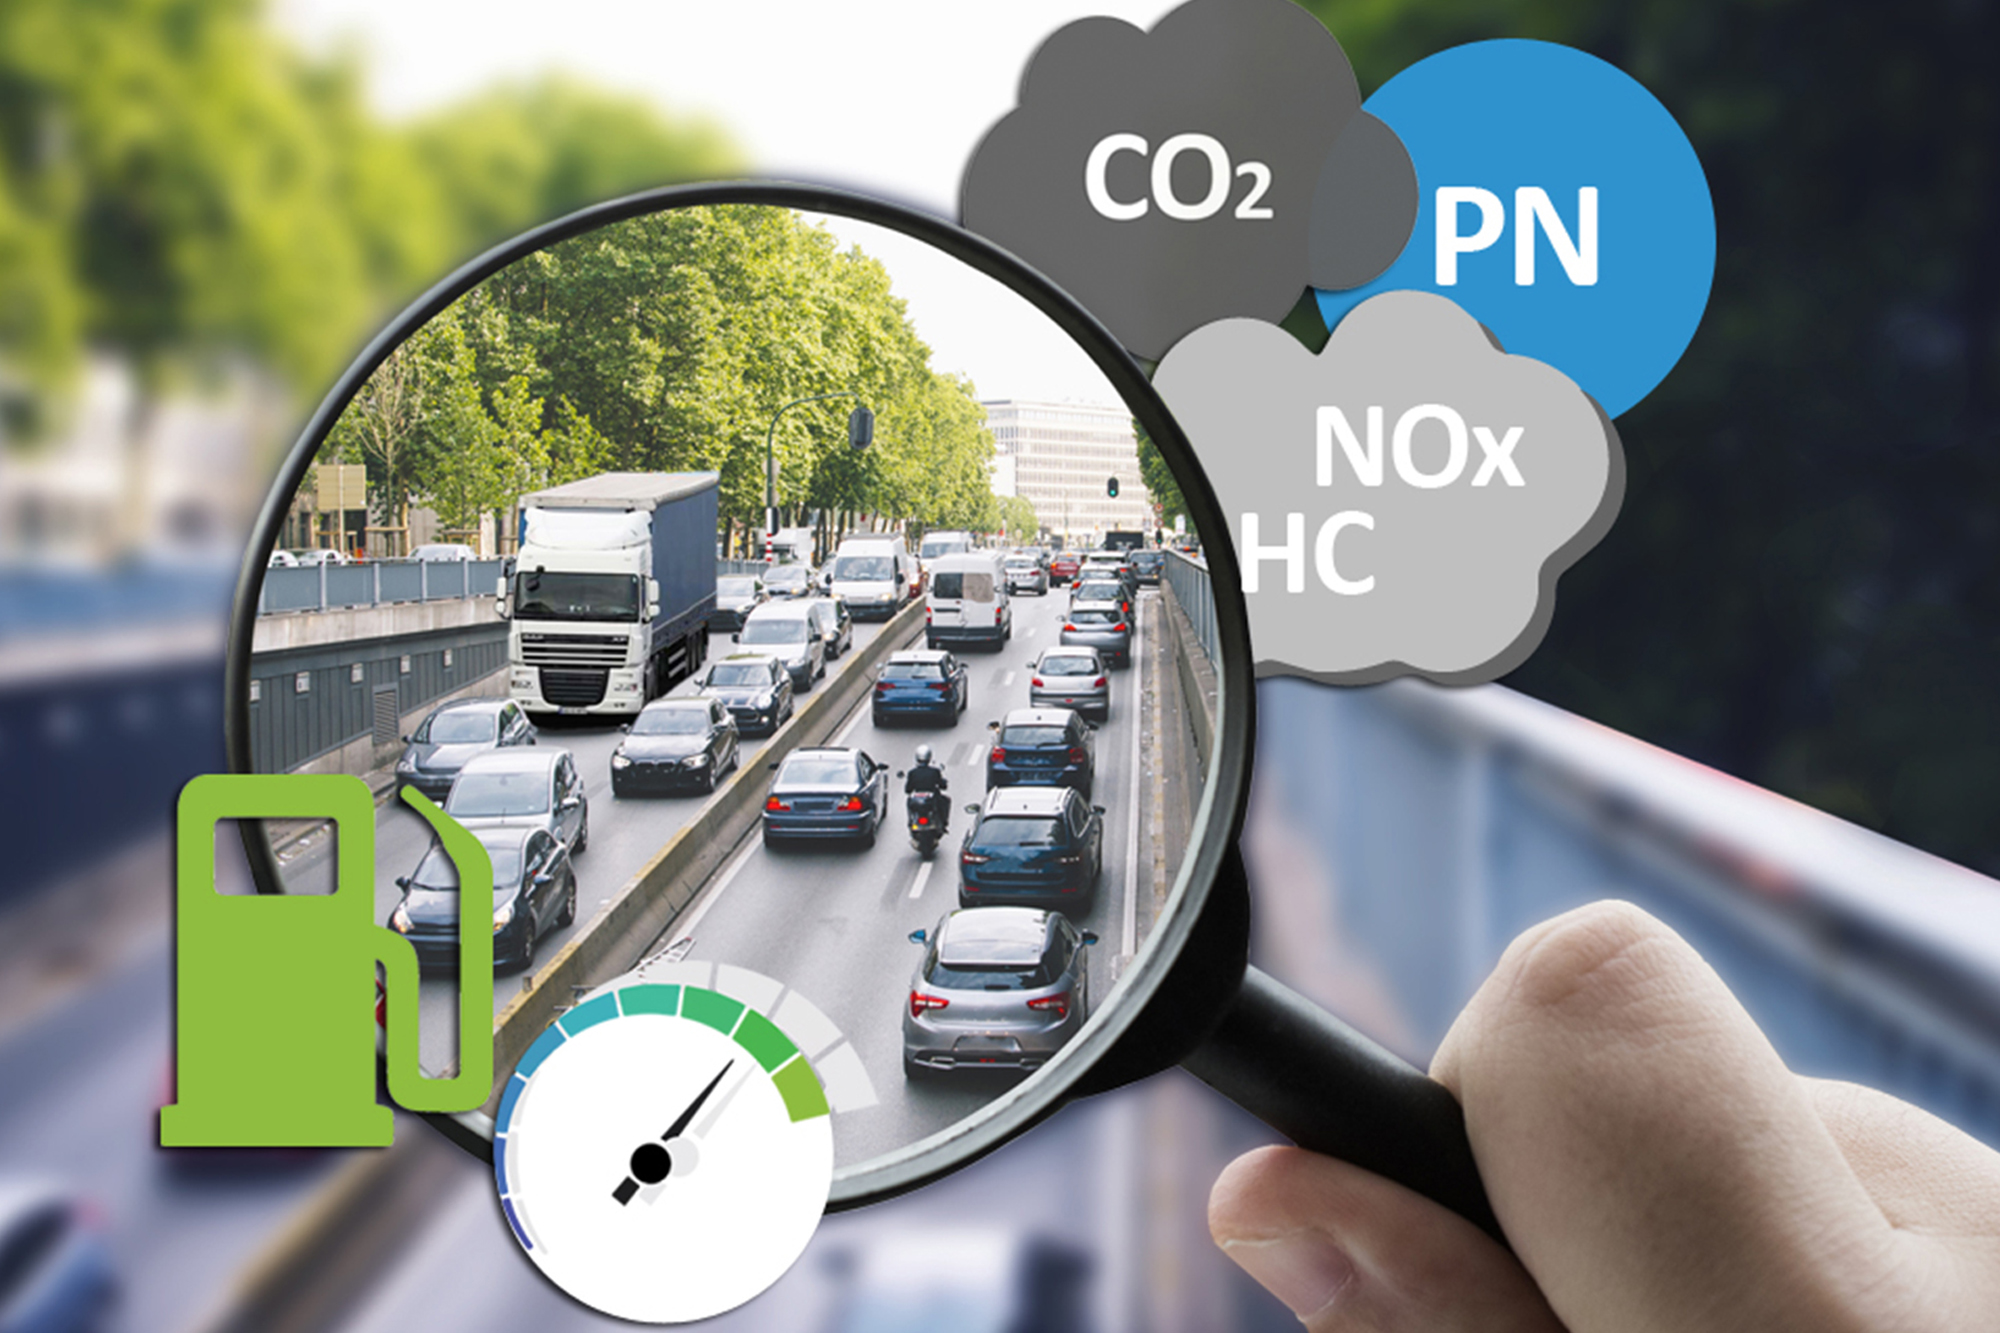 Pollutant emissions measurement on running vehicles